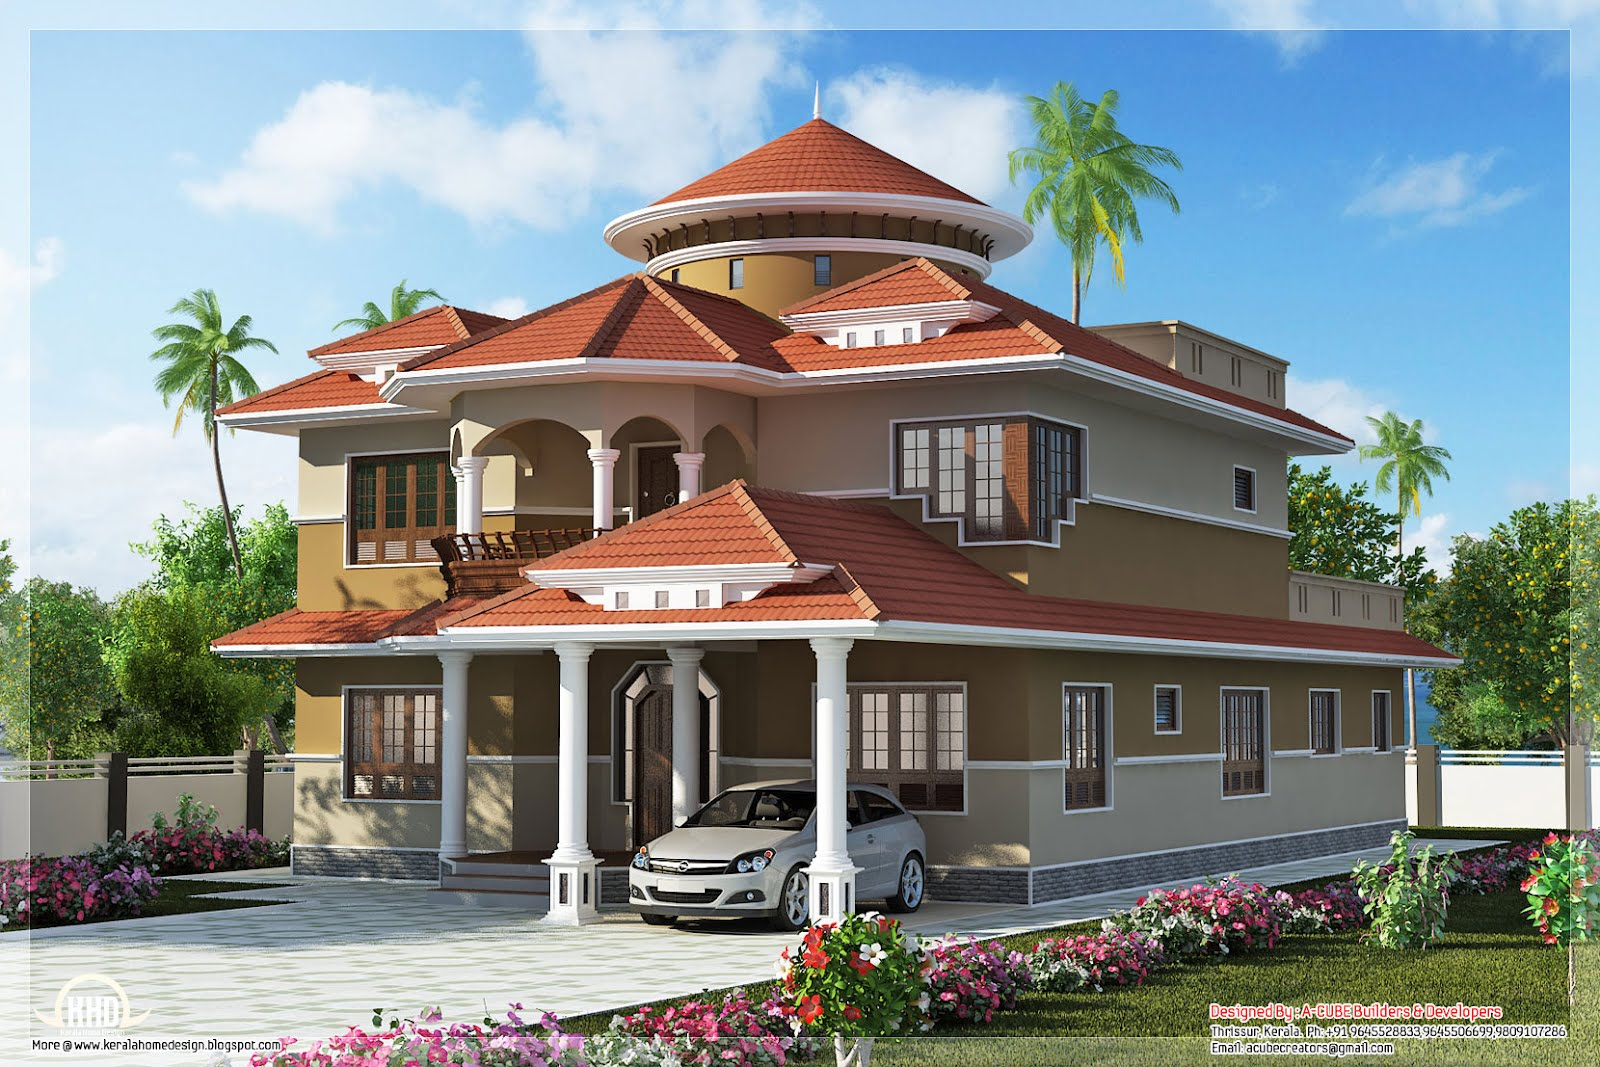 Beautiful Dream Home House Design 1600 x 1067 · 343 kB · jpeg